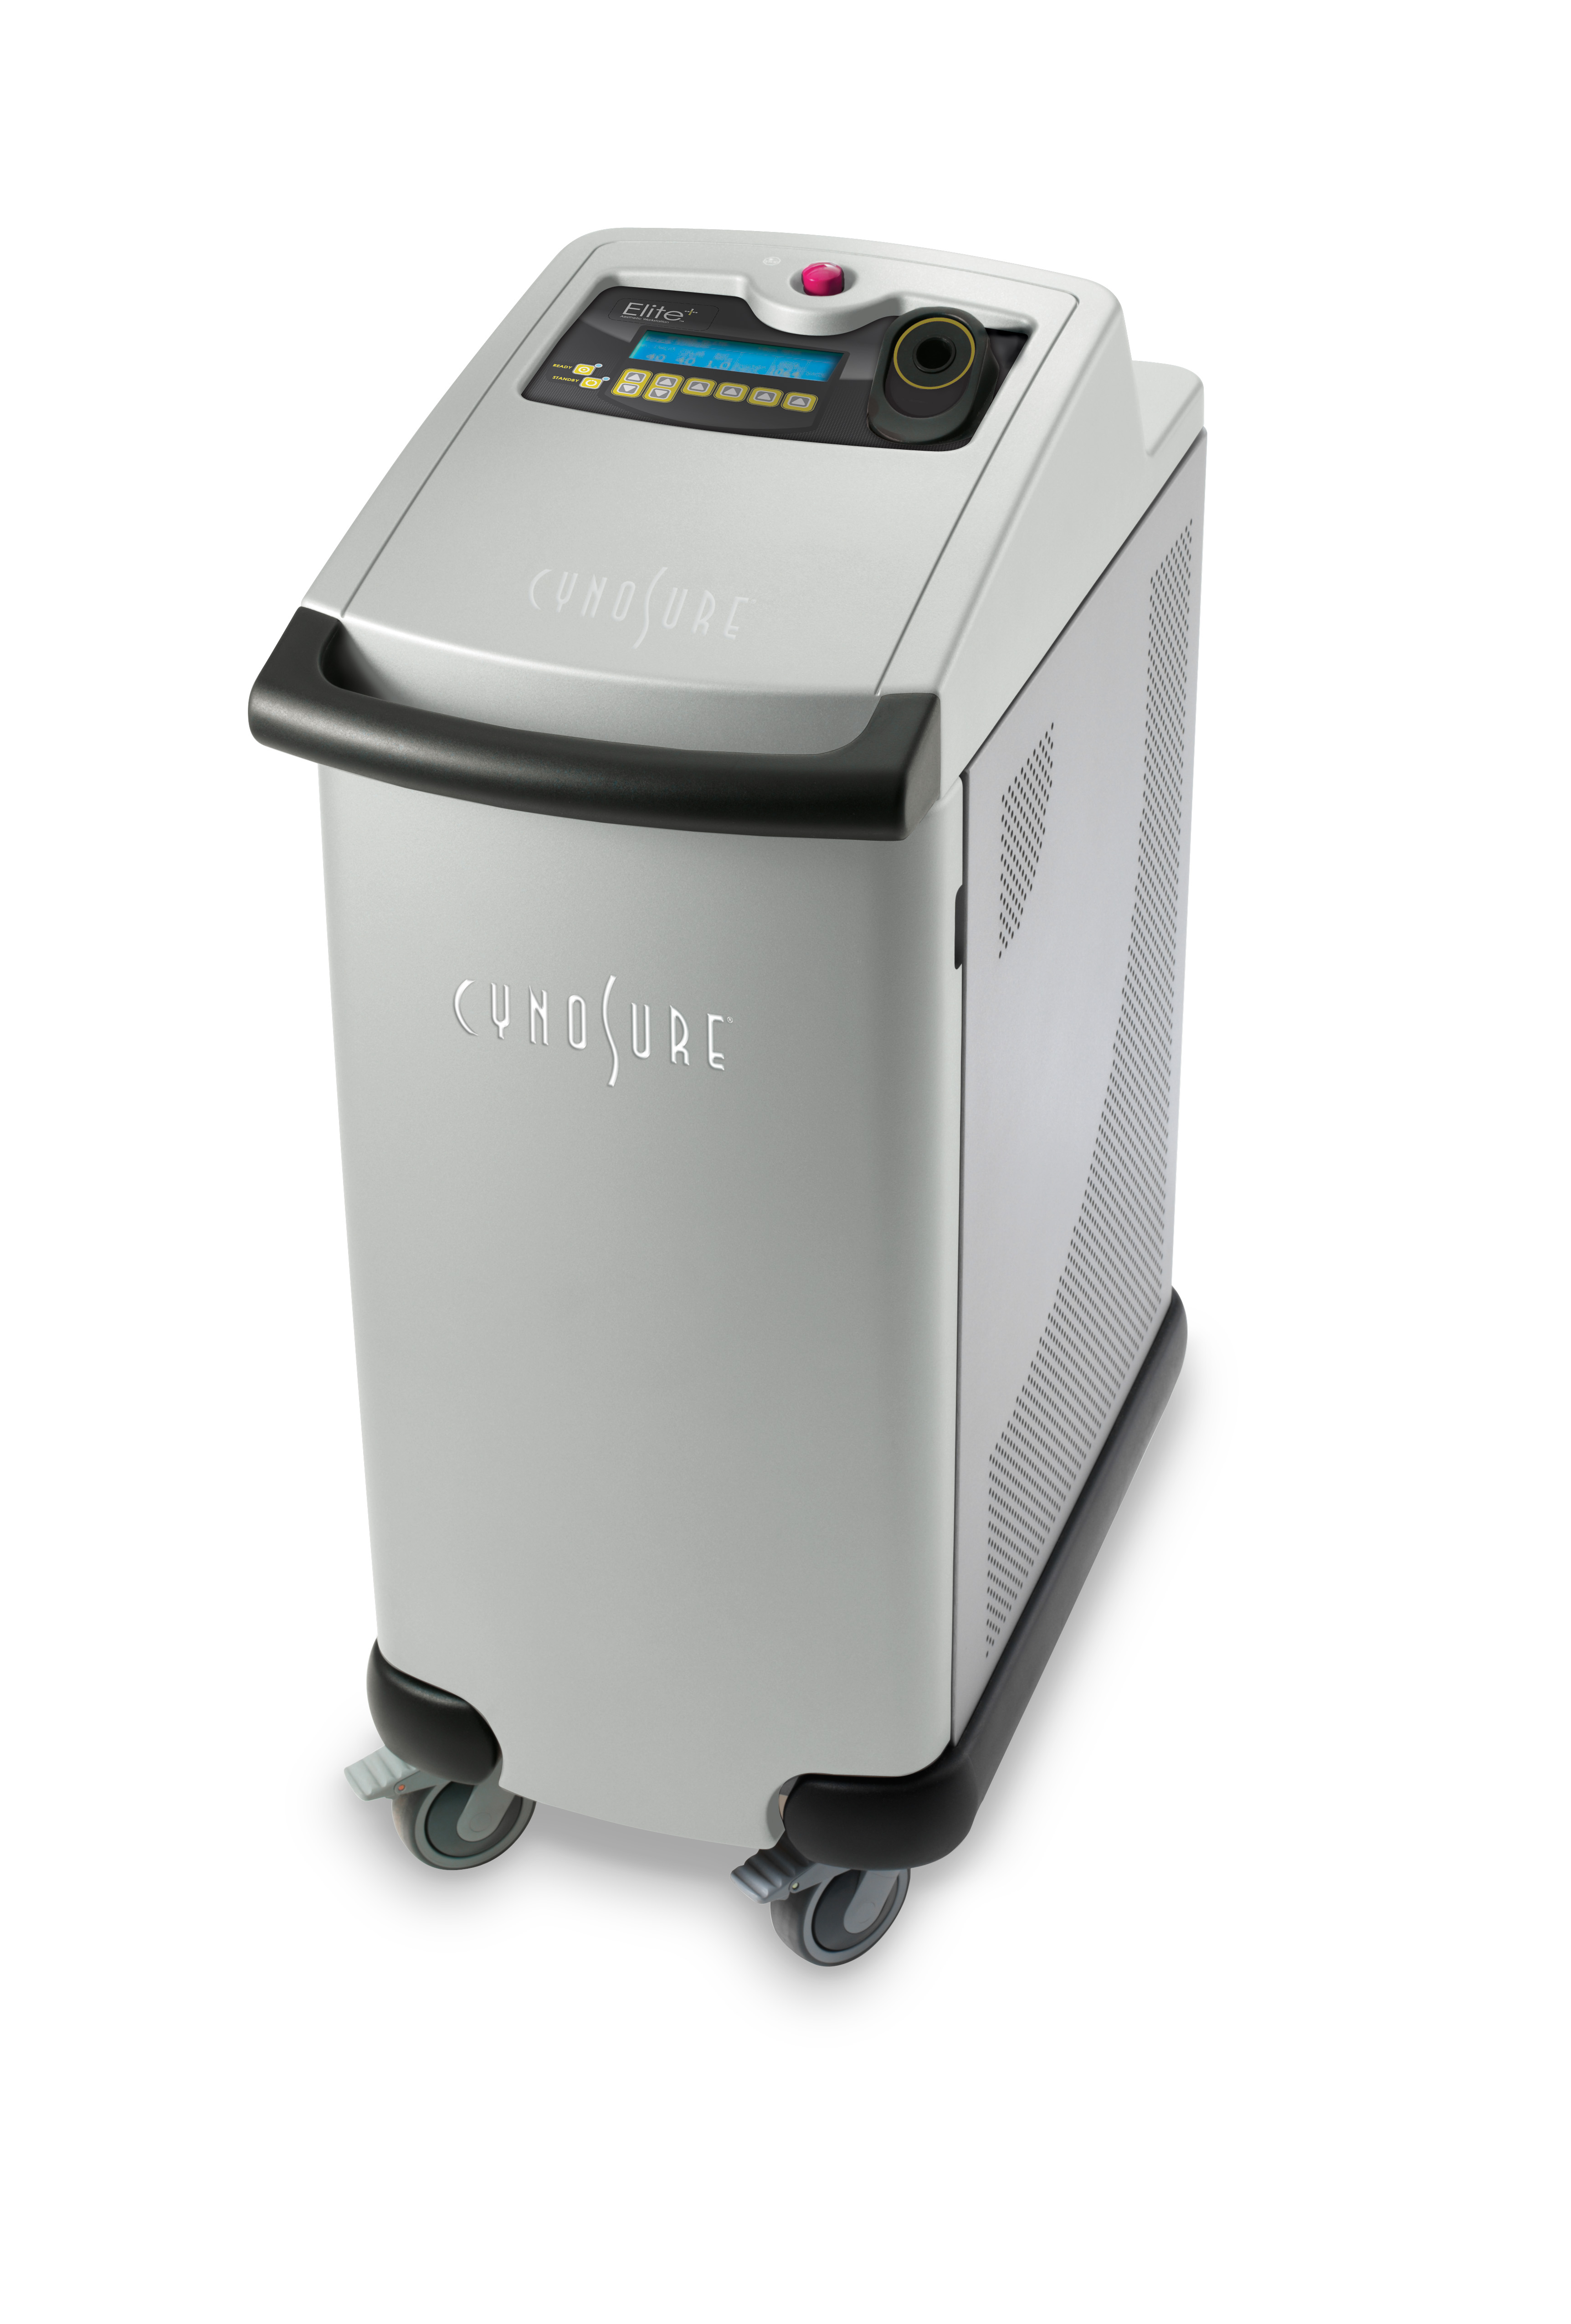 Used Cynosure Elite Aesthetic Equipment For Sale